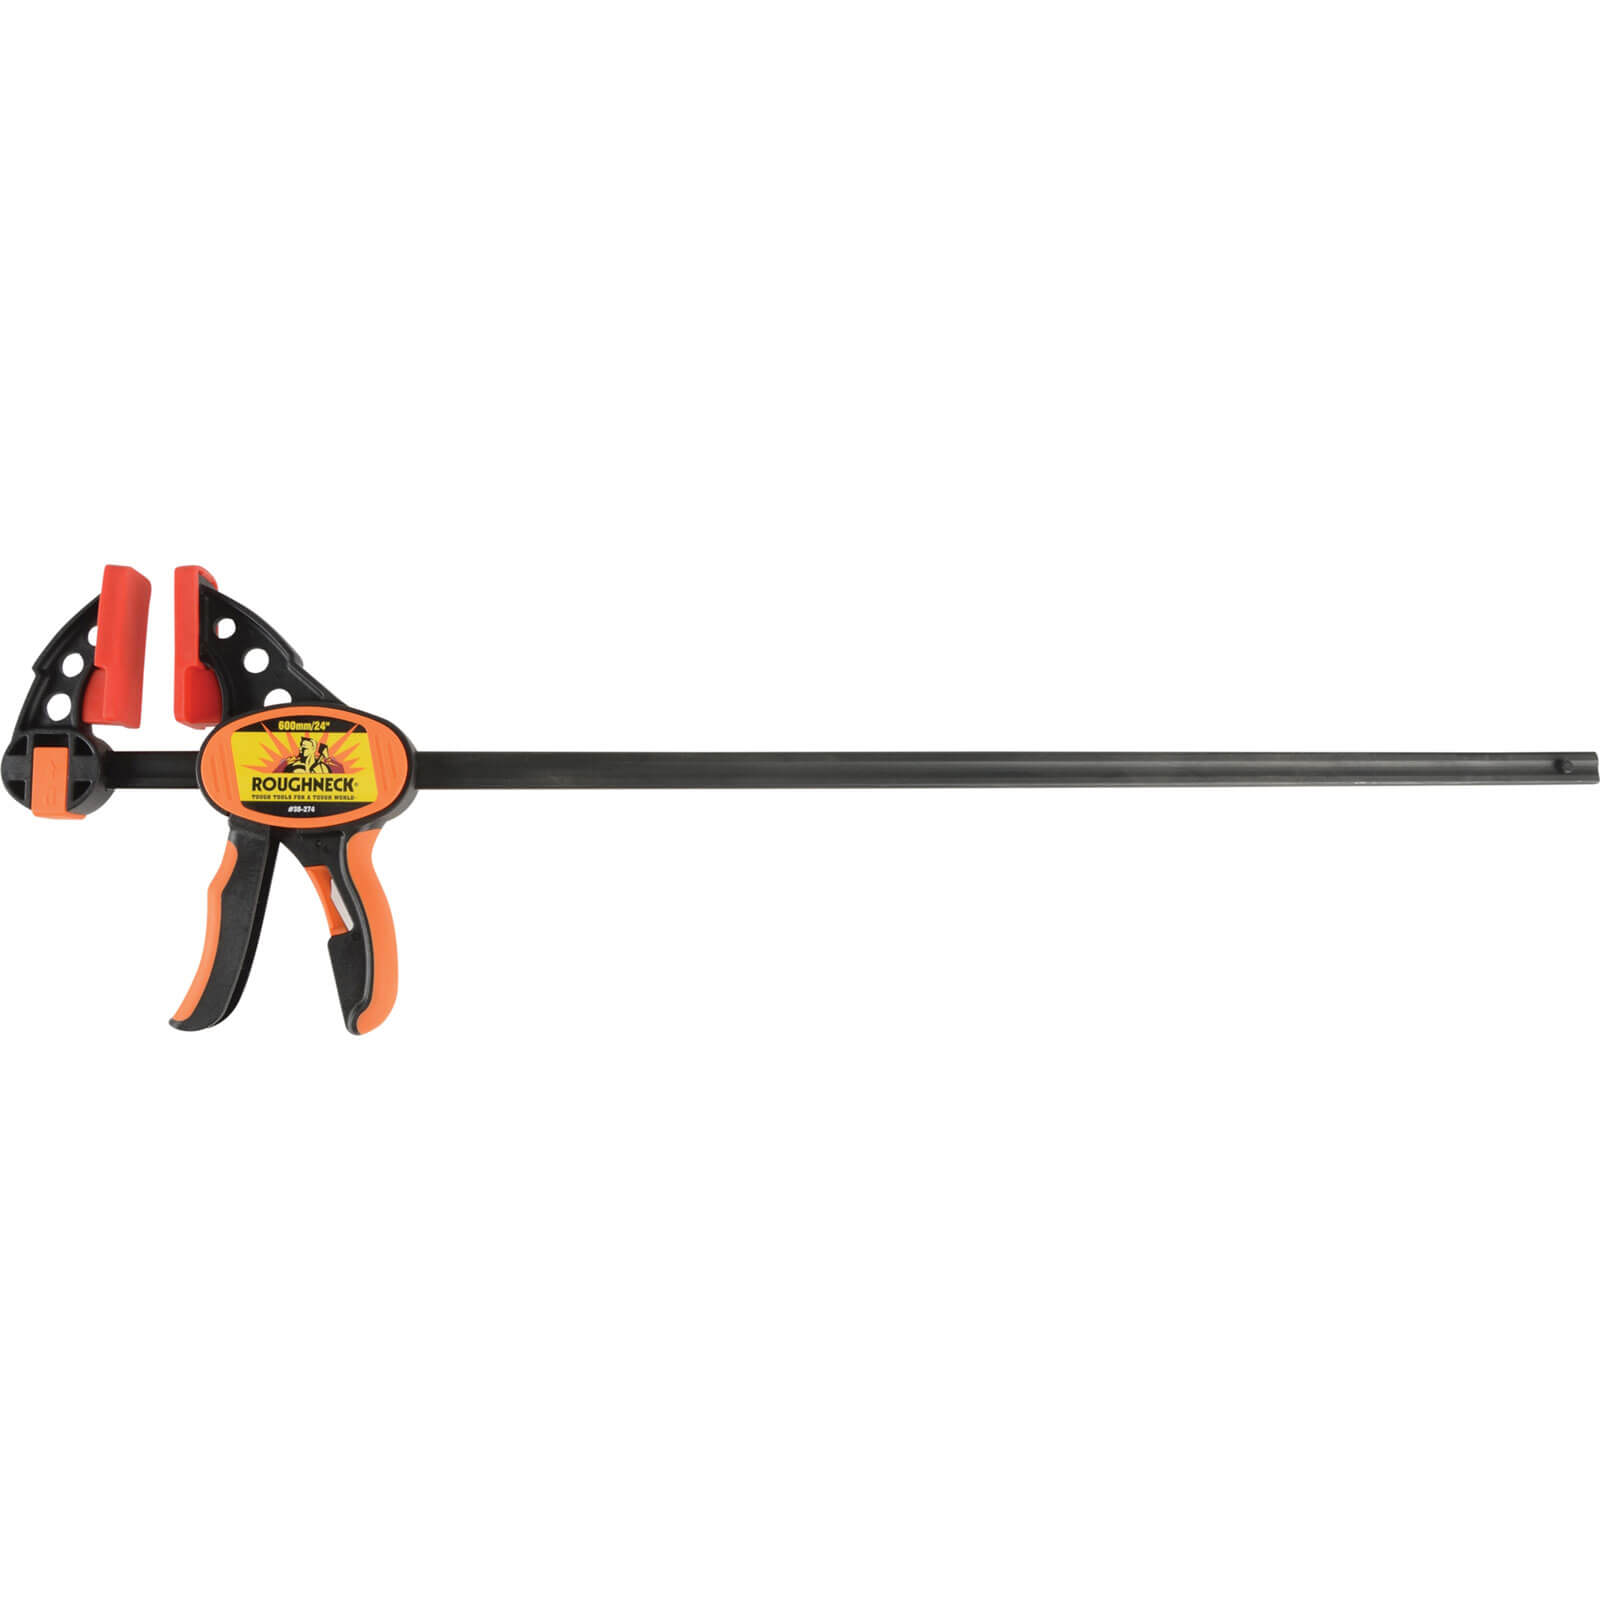 Roughneck Ratcheting Quick Grip Clamp 600mm